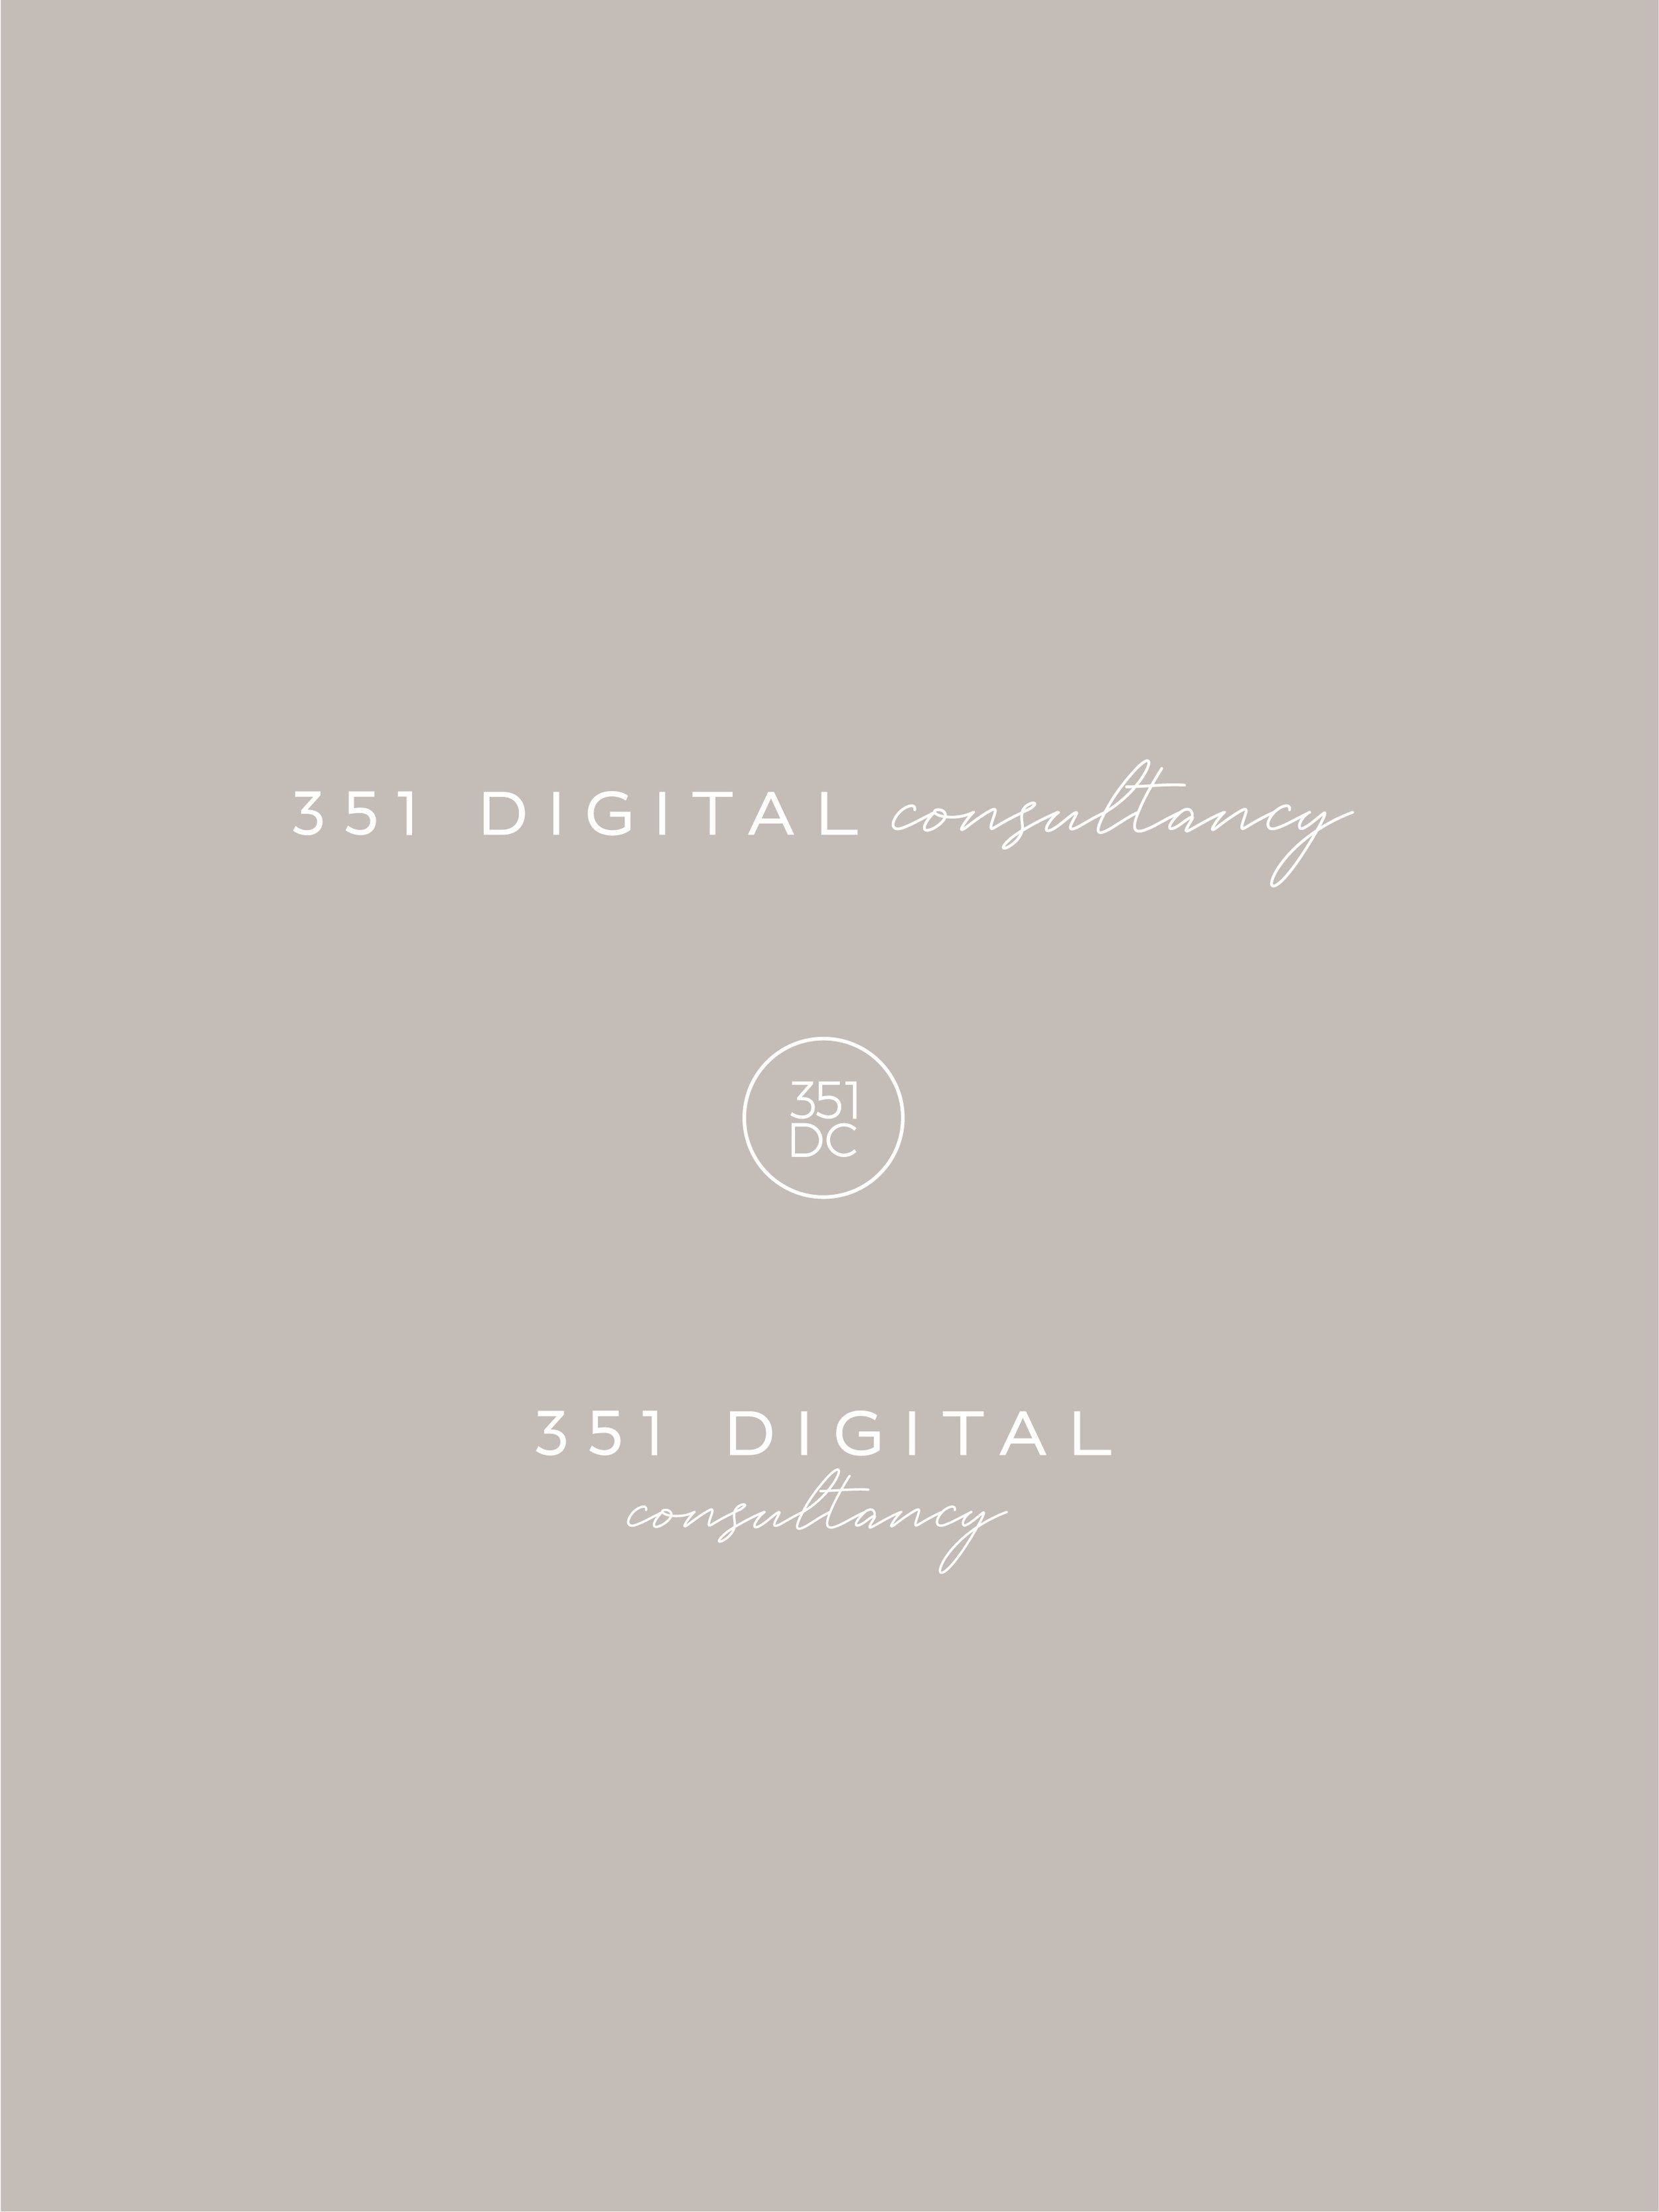 351 Digital Consultancy logo elements - by January Made Design